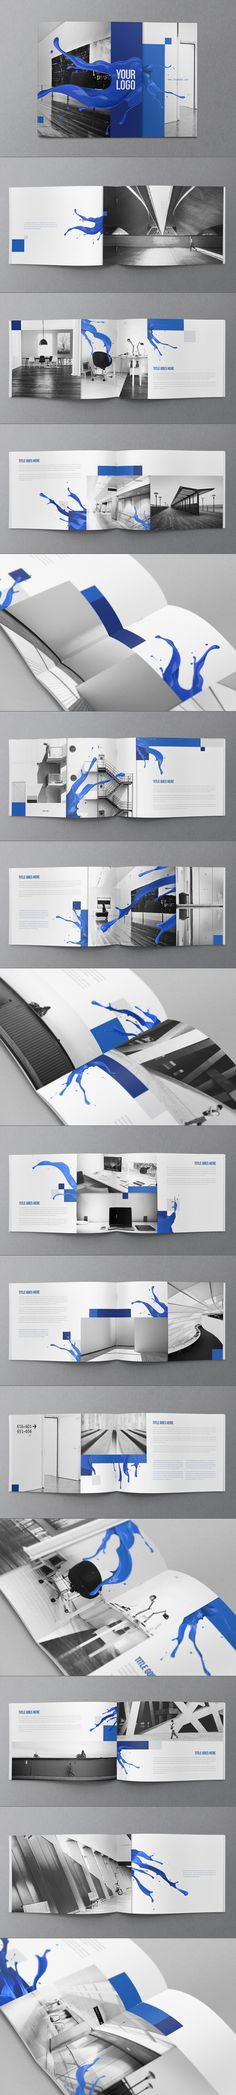 Creative Fresh splash Brochure #brochures #designs